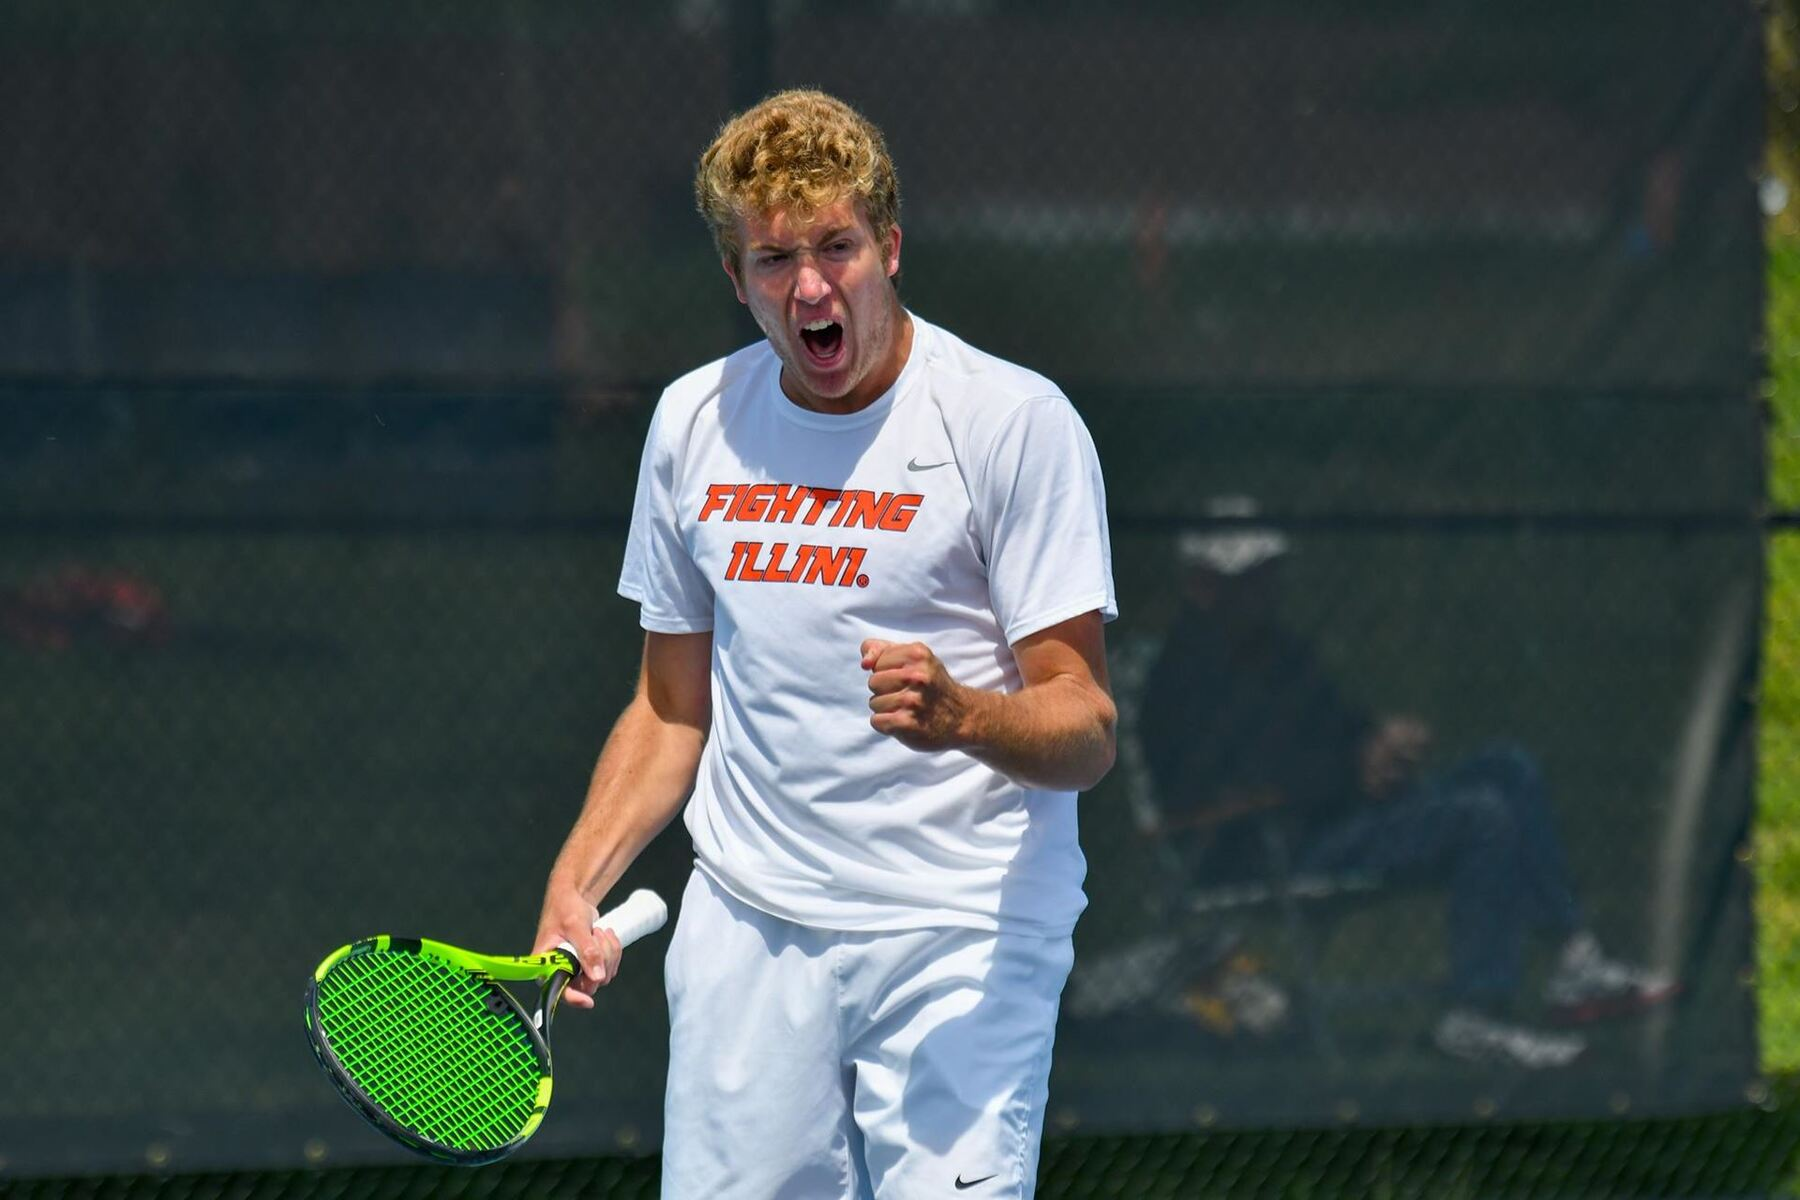 a tennis player reacts to winning a volley